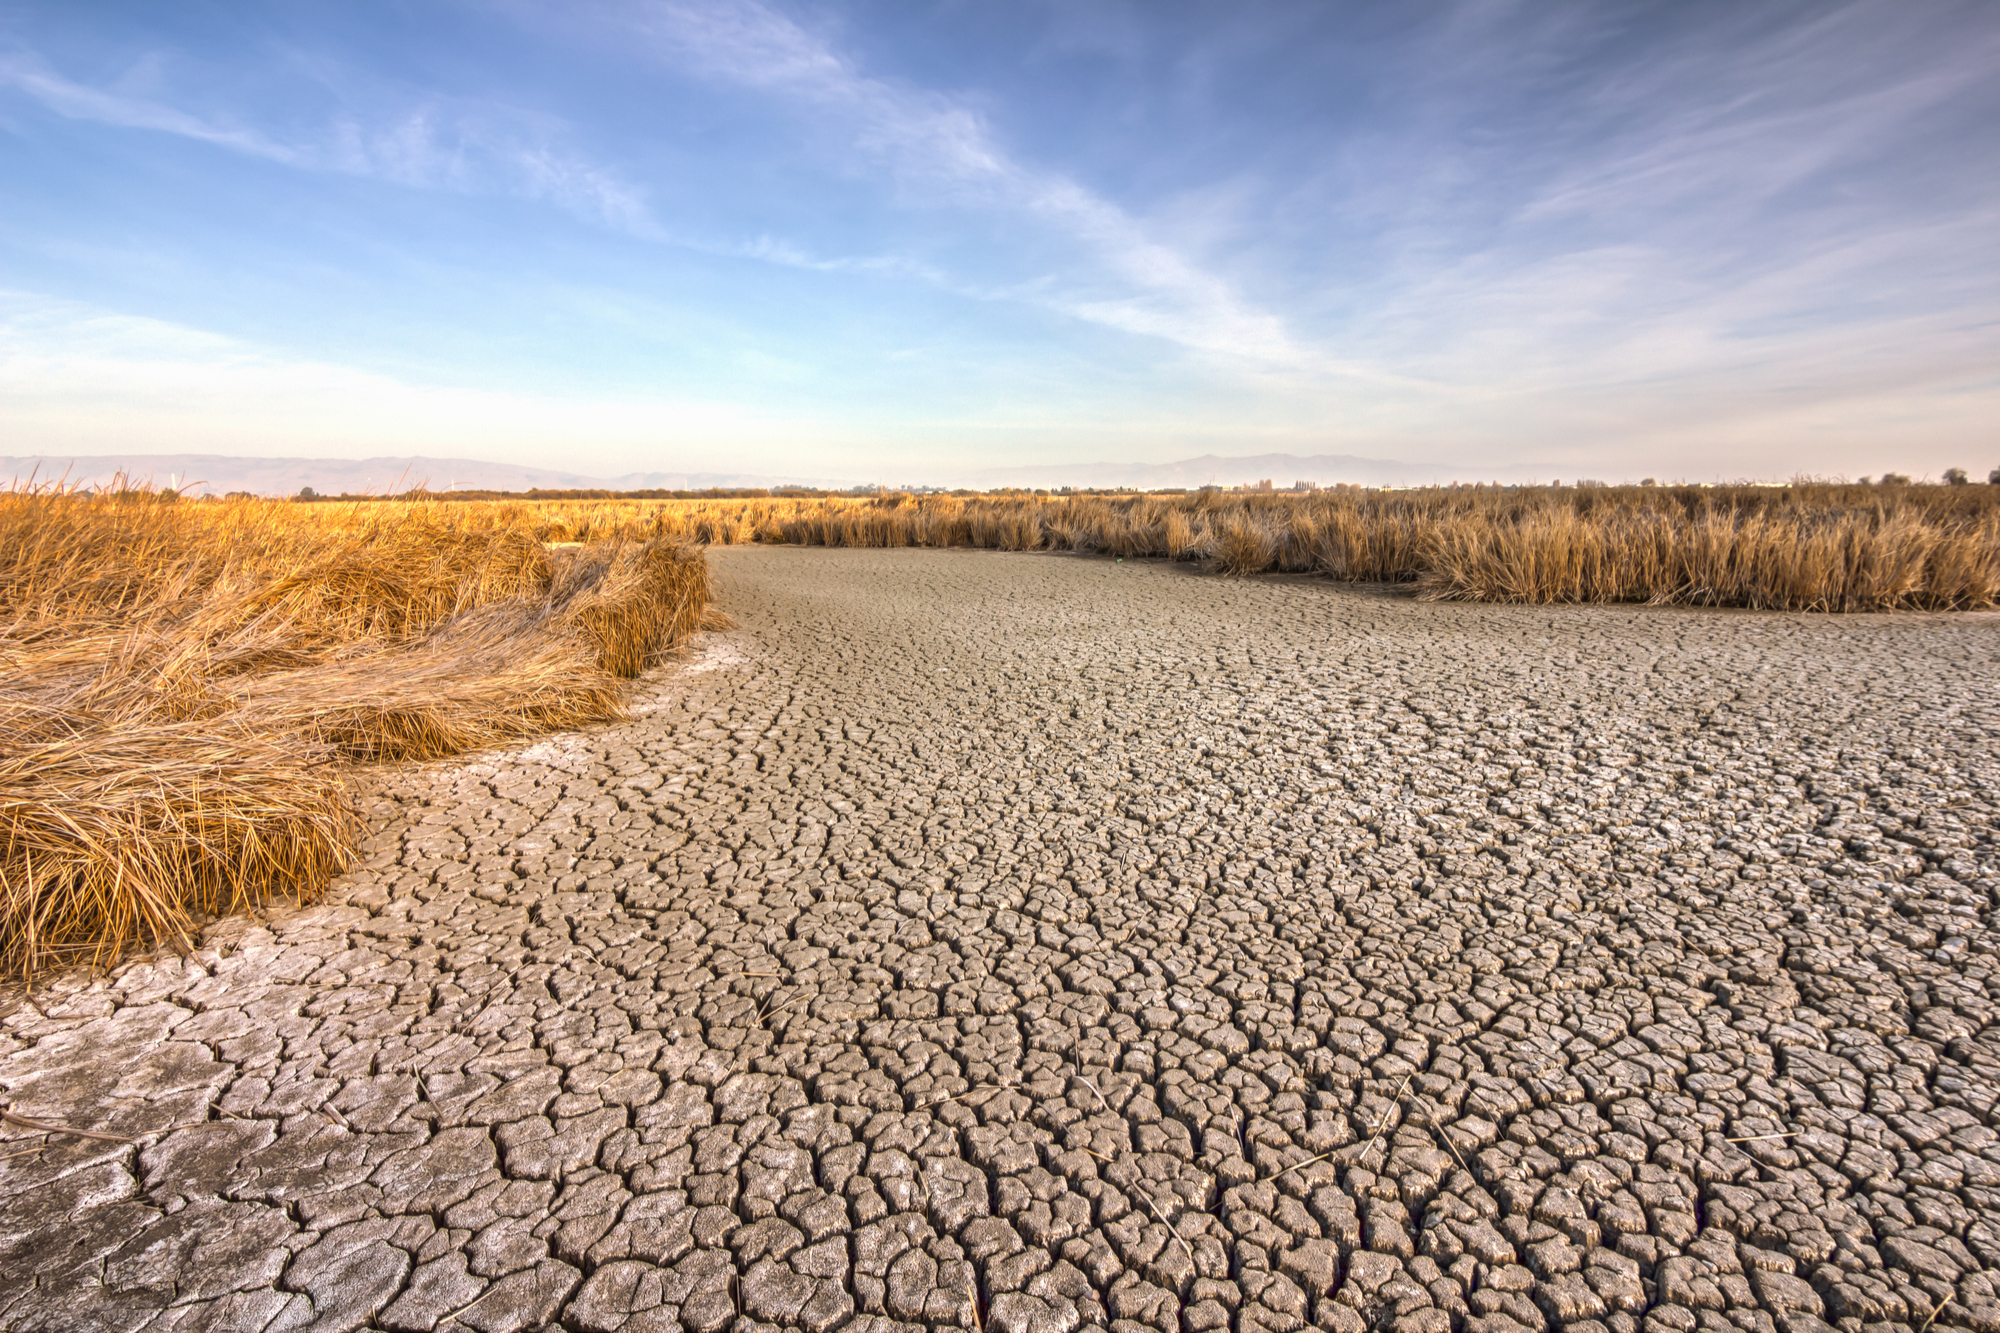 California during a drought